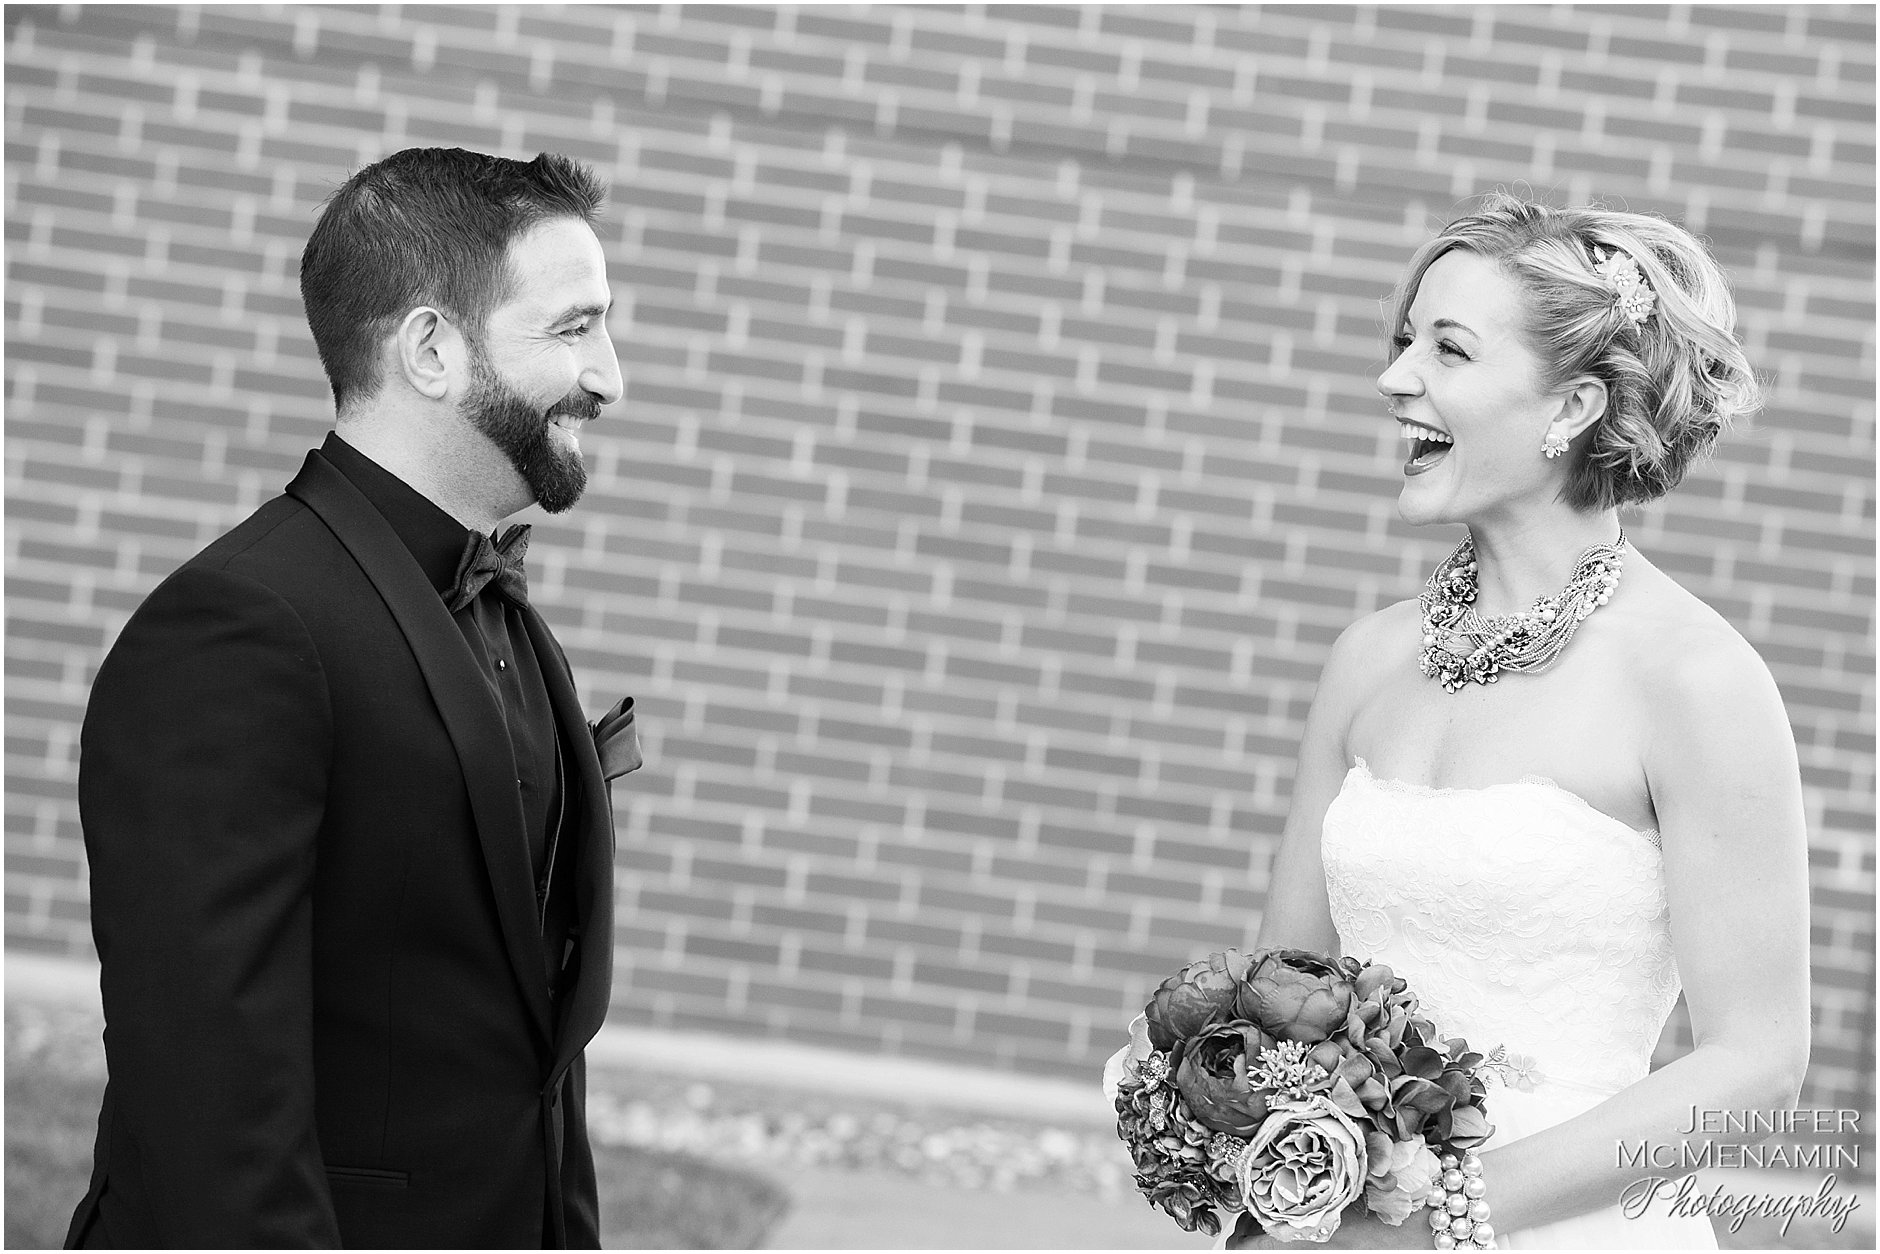 004-MorrisPustilnik_00072bw-0021_Jennifer-McMenamin-Photography-Royal-Sonesta-Harbor-Court-Hotel-wedding-Baltimore-wedding-photographer